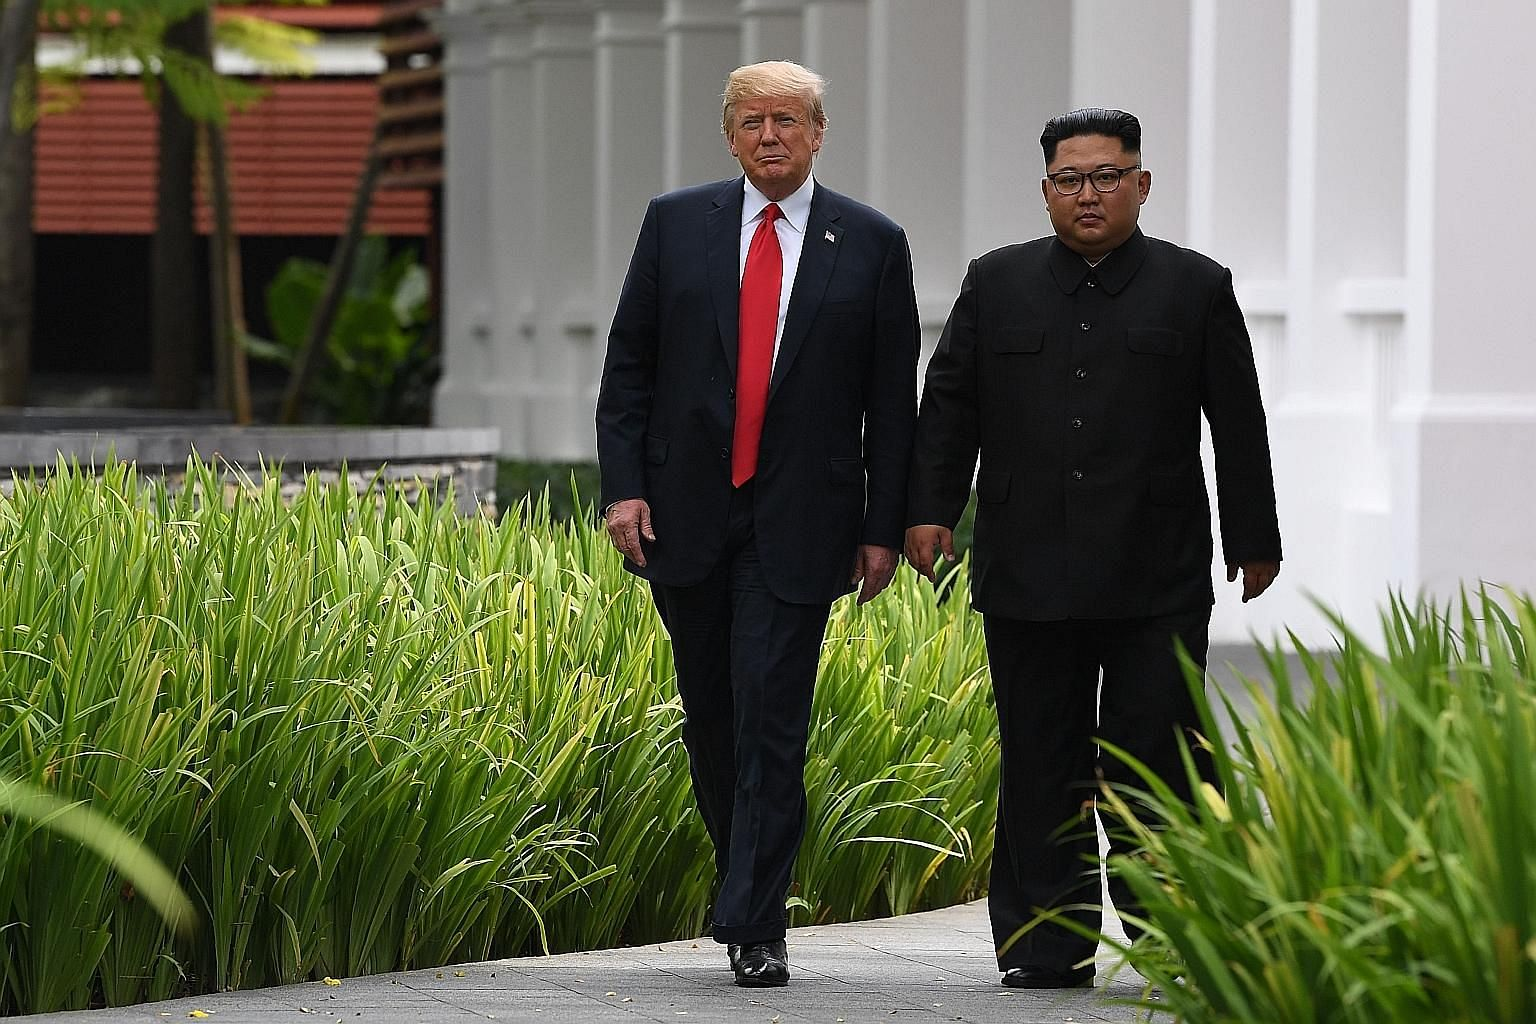 US President Donald Trump and North Korean leader Kim Jong Un taking a break during their historic summit meeting at the Capella Hotel in Singapore in June. Mr Kim recently complained that the US does not believe in his commitment to denuclearisation